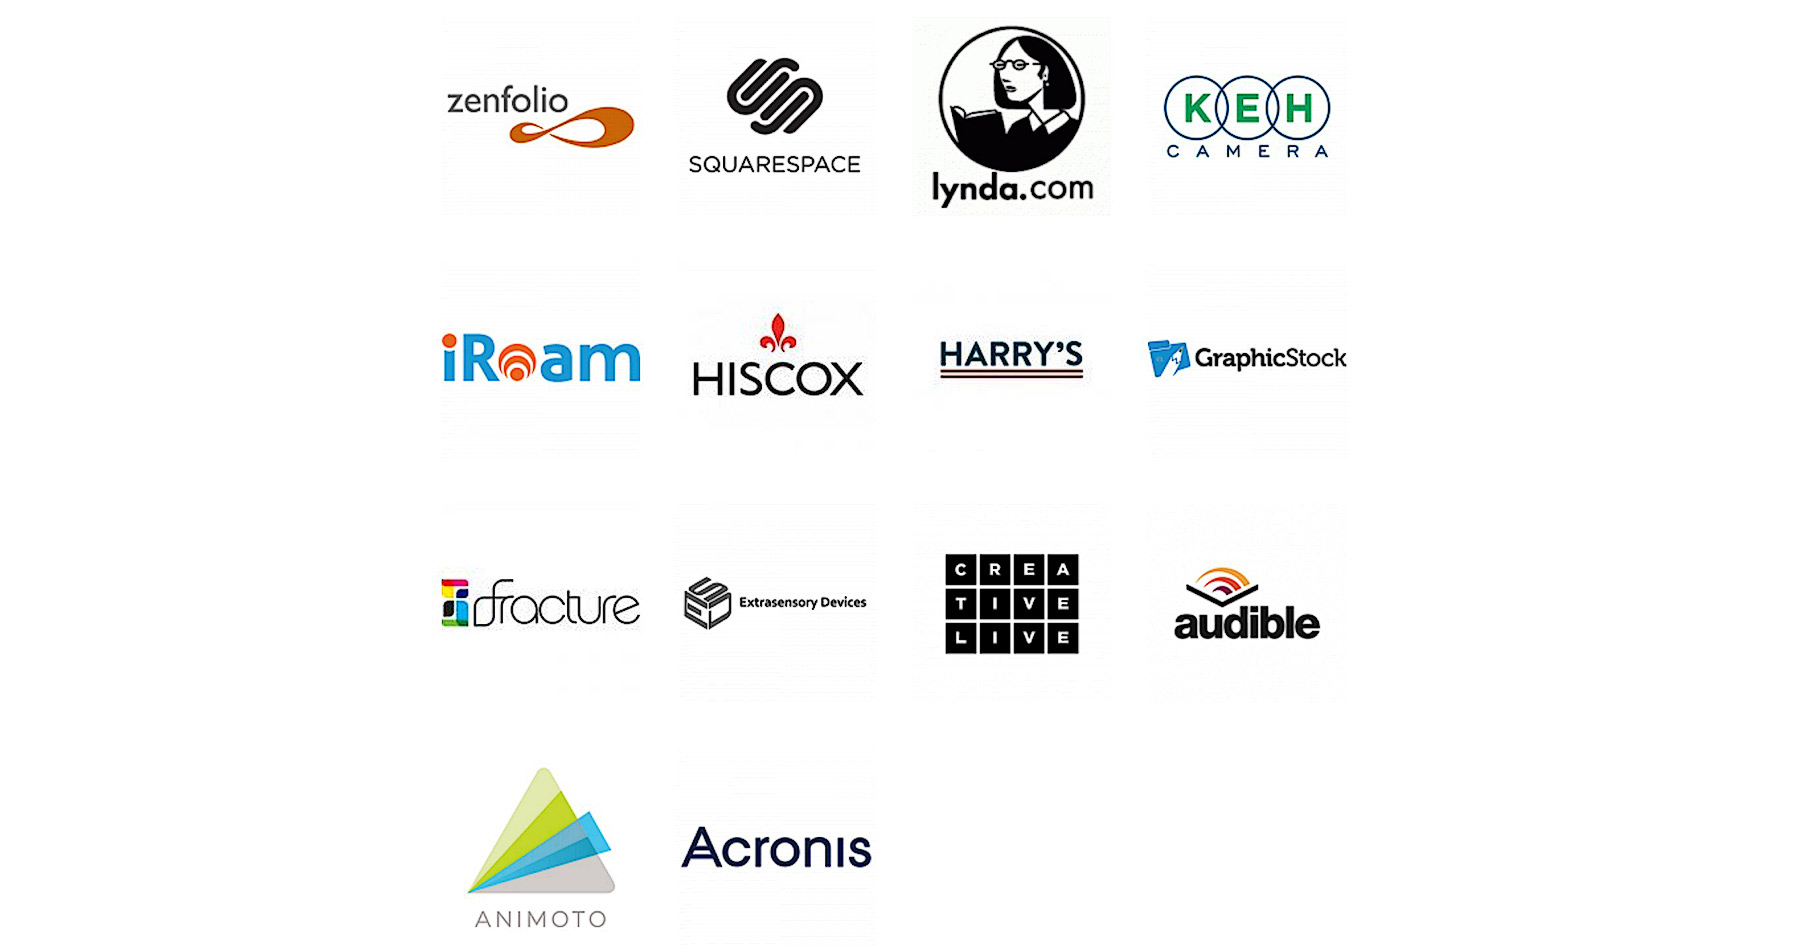 TFTTF sponsors: zenfolio, squarespace, lynda.com, KEH Camera, iRoam, Hiscox, Harry's, GraphicStock, fracture, Extrasensory Devices, Creative Live, audible, Animoto, Acronis